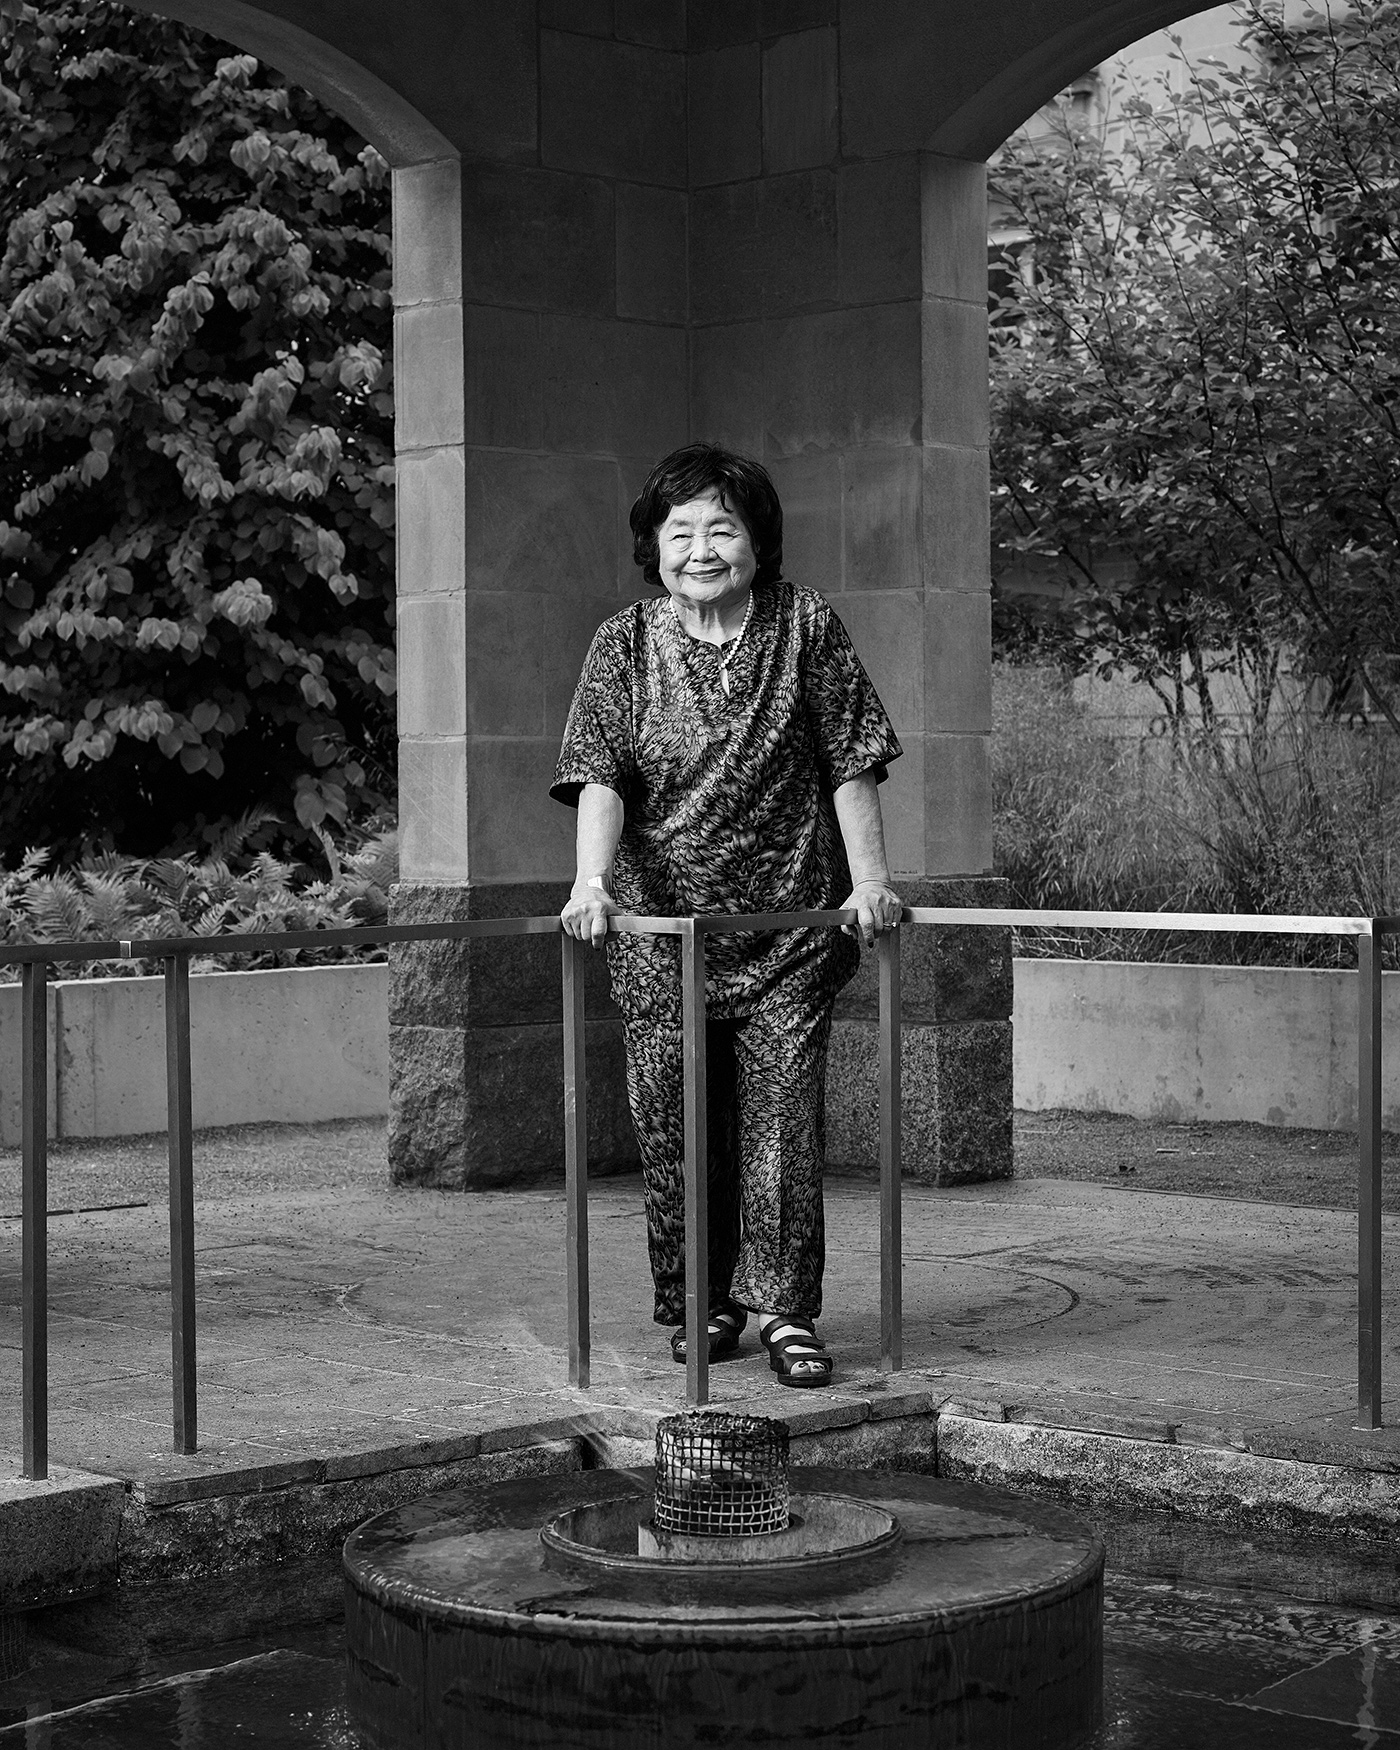 Portrait of Setsuko Thurlow standing by the Eternal Flame in the Peace Garden at Nathan Phillips Square in Toronto.